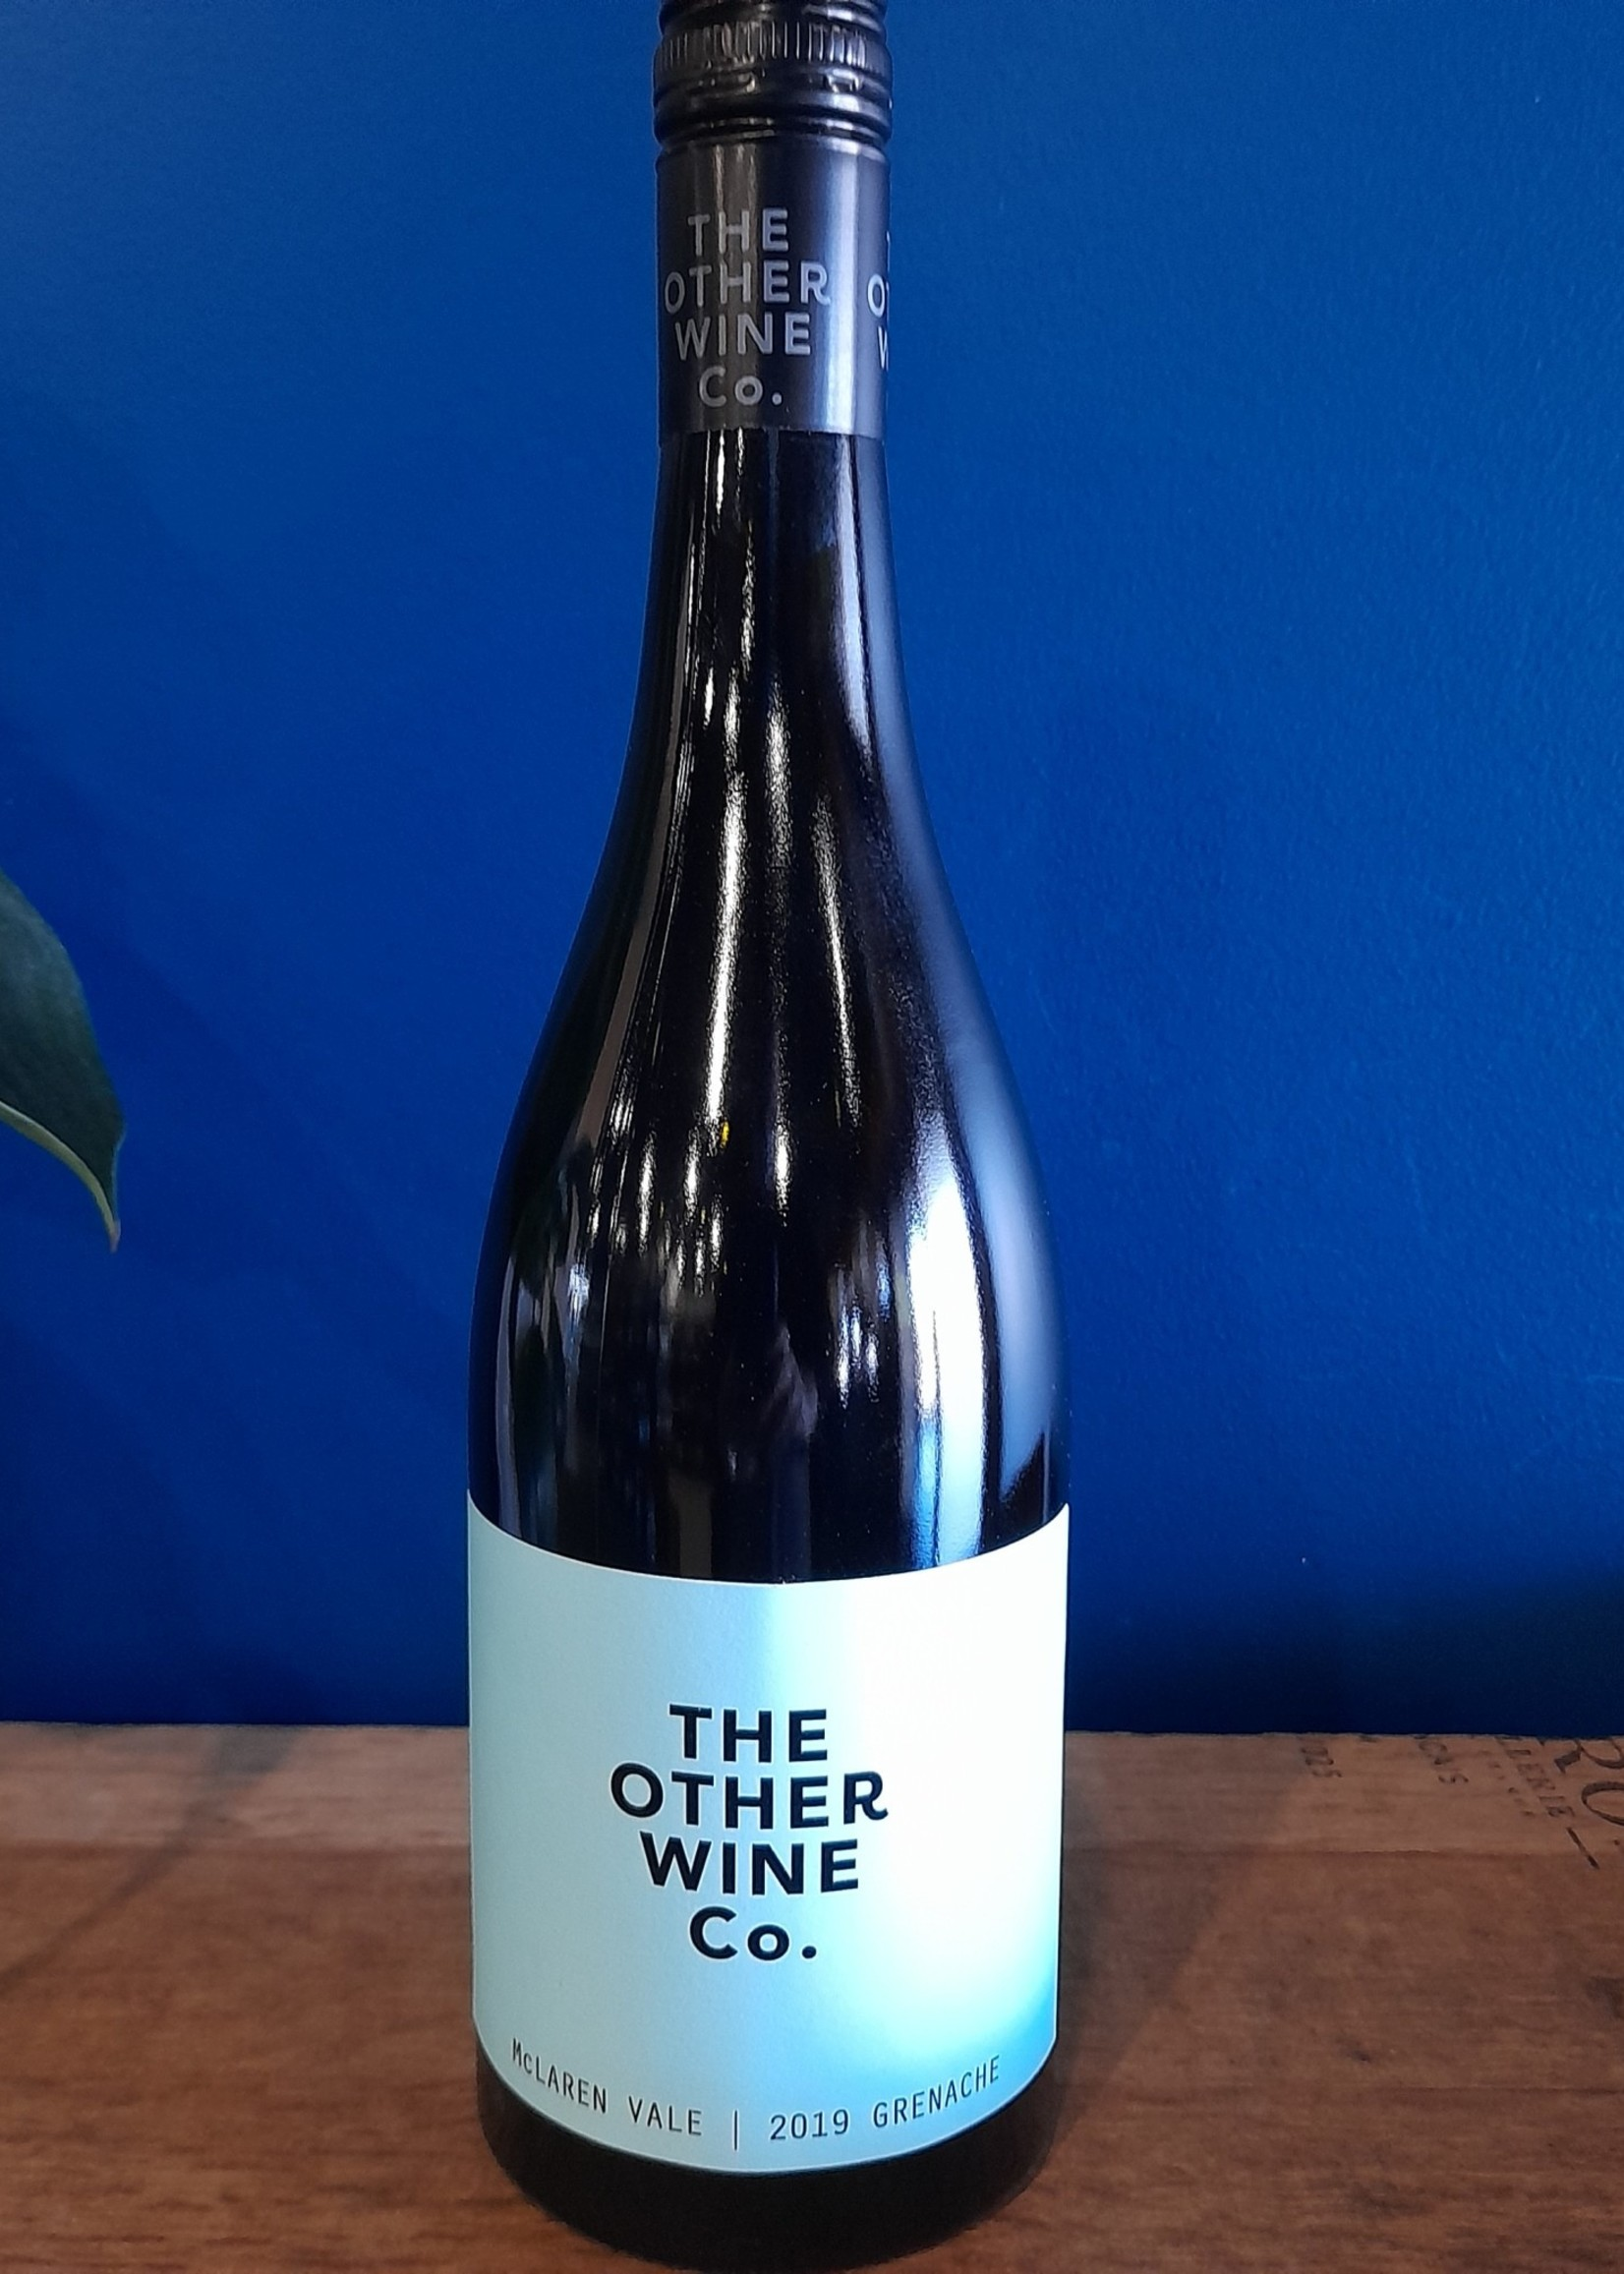 The Other Wine Co. The Other Wine Co. 2019 Grenache